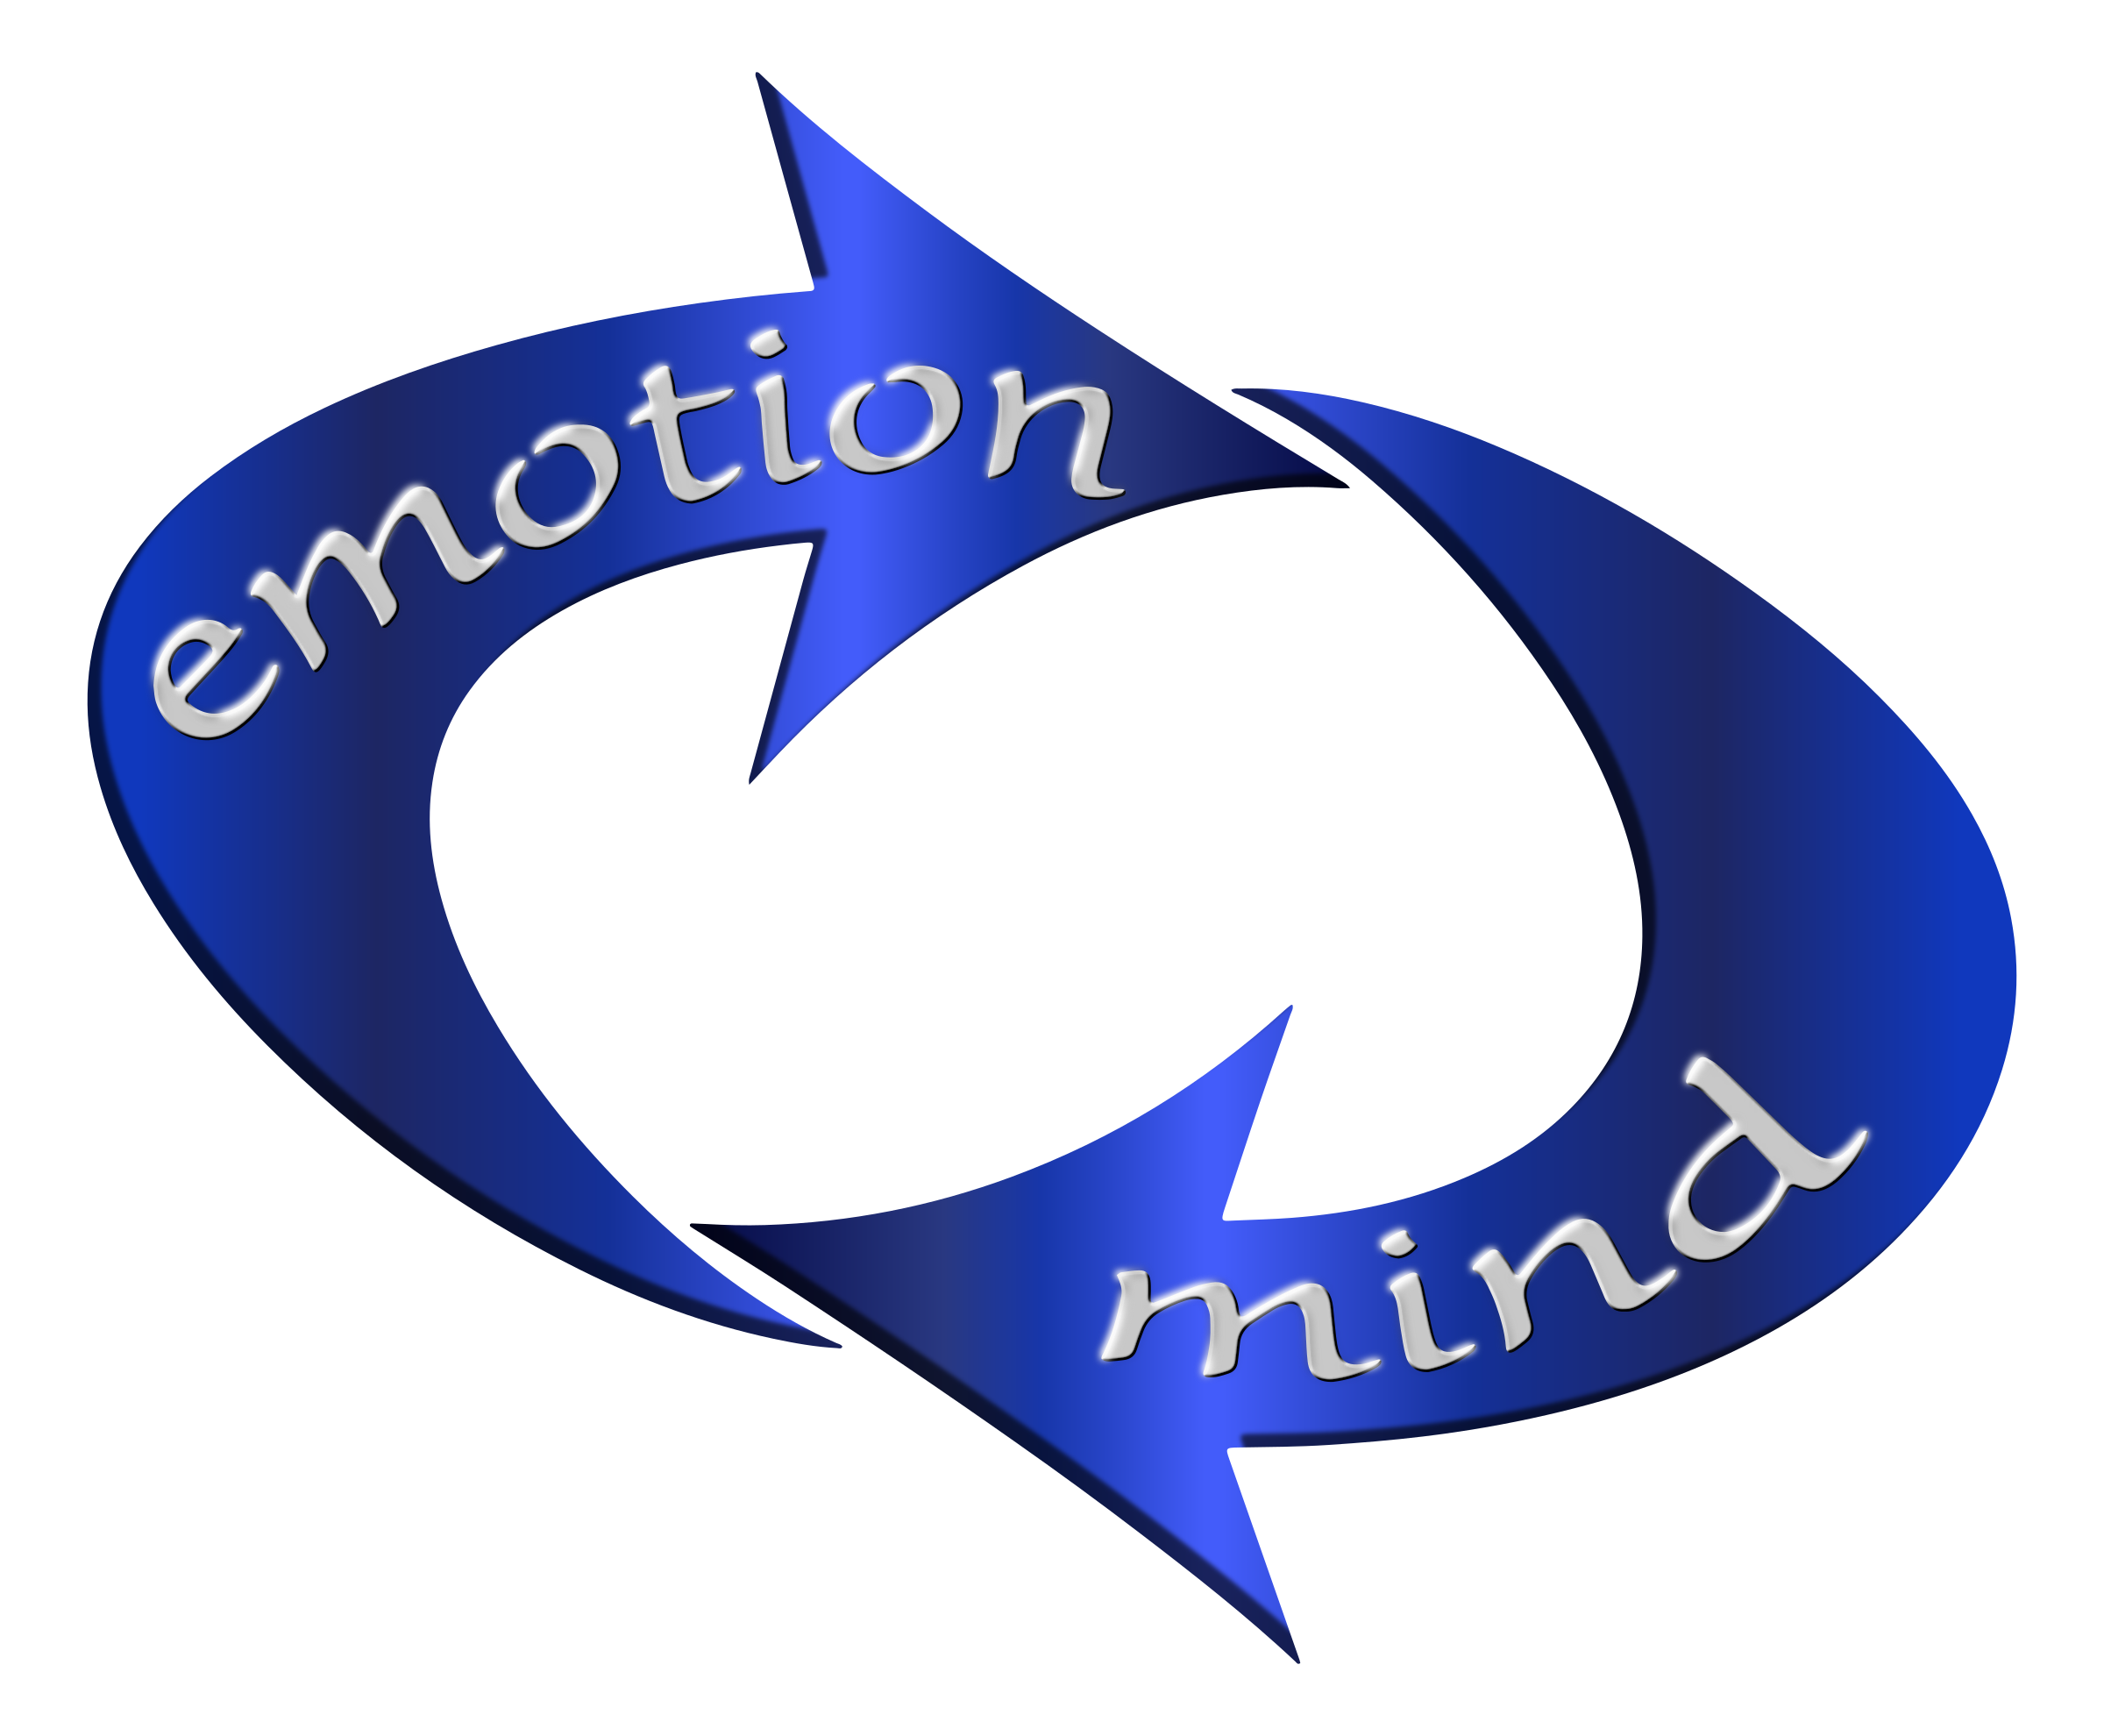 Mind Emotion Loop by GDJ